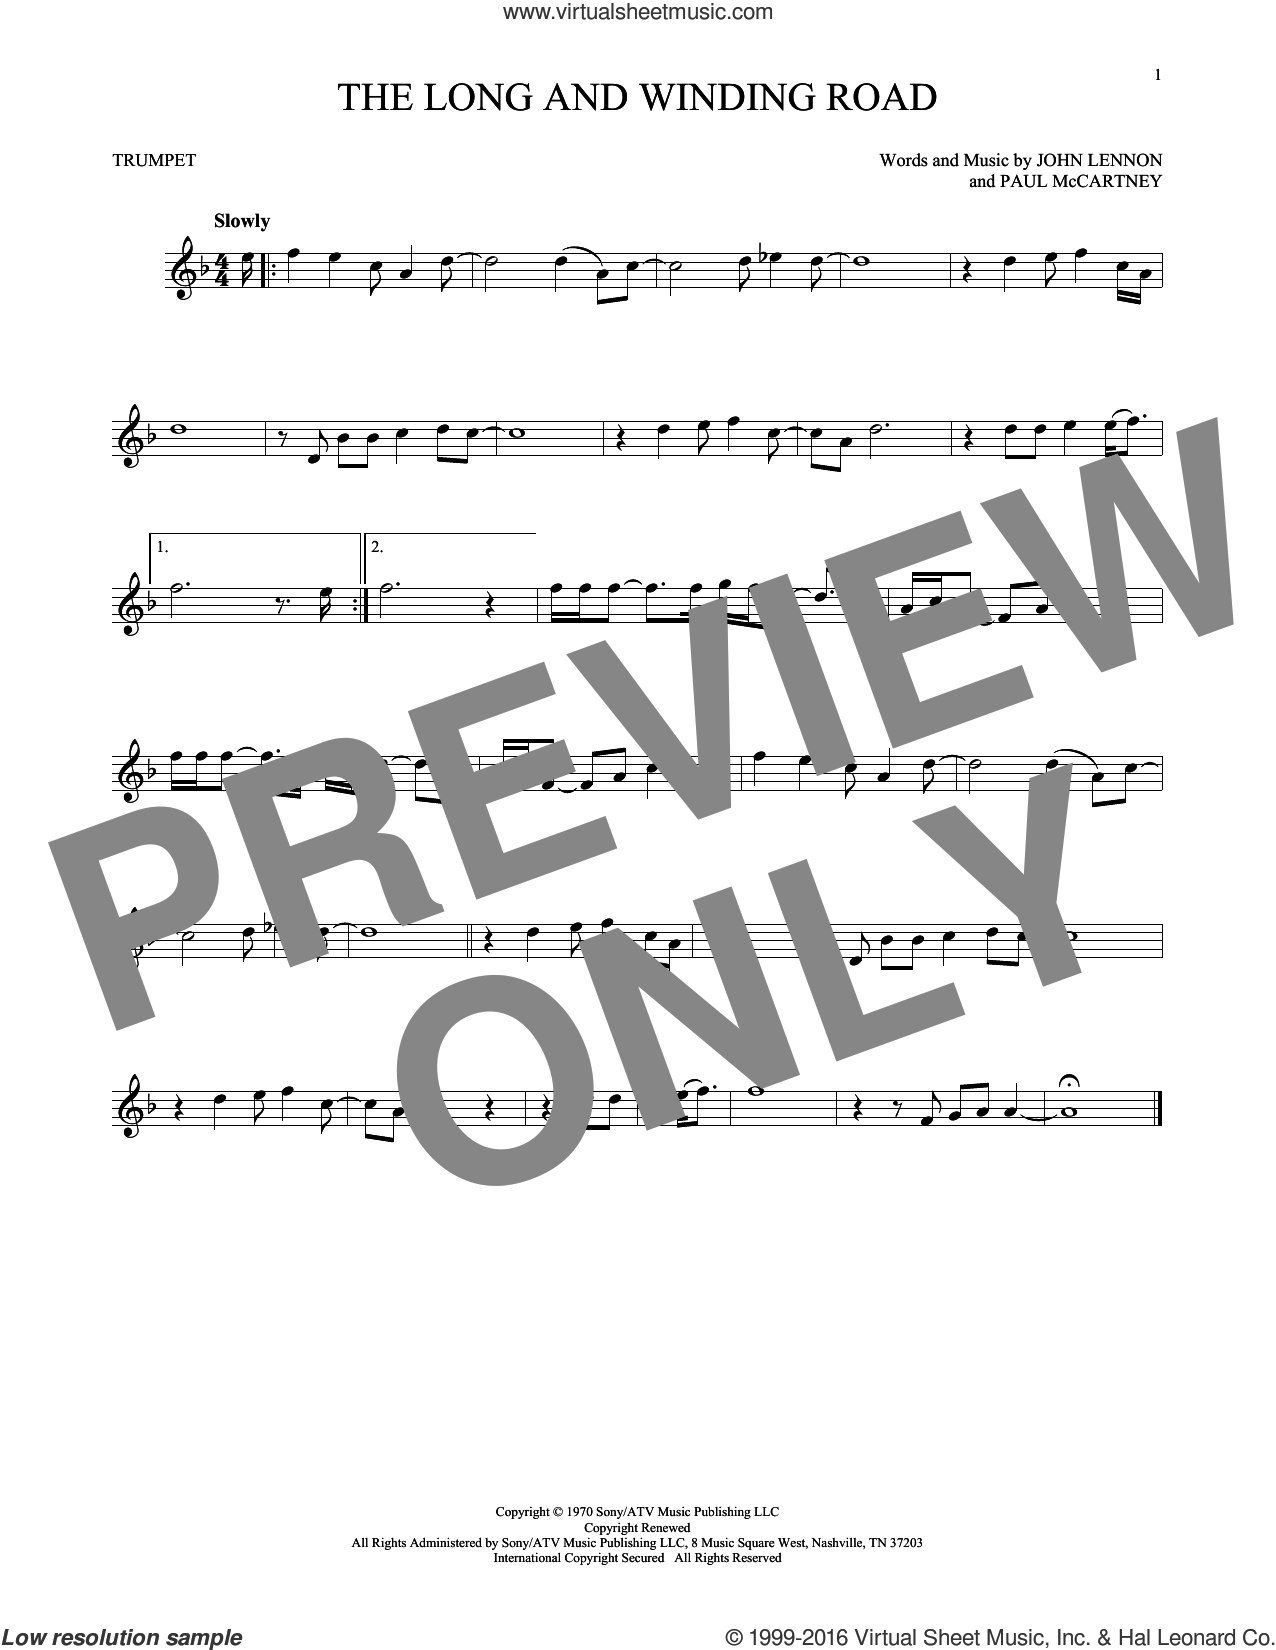 The Long And Winding Road sheet music for trumpet solo by The Beatles, John Lennon and Paul McCartney, intermediate skill level